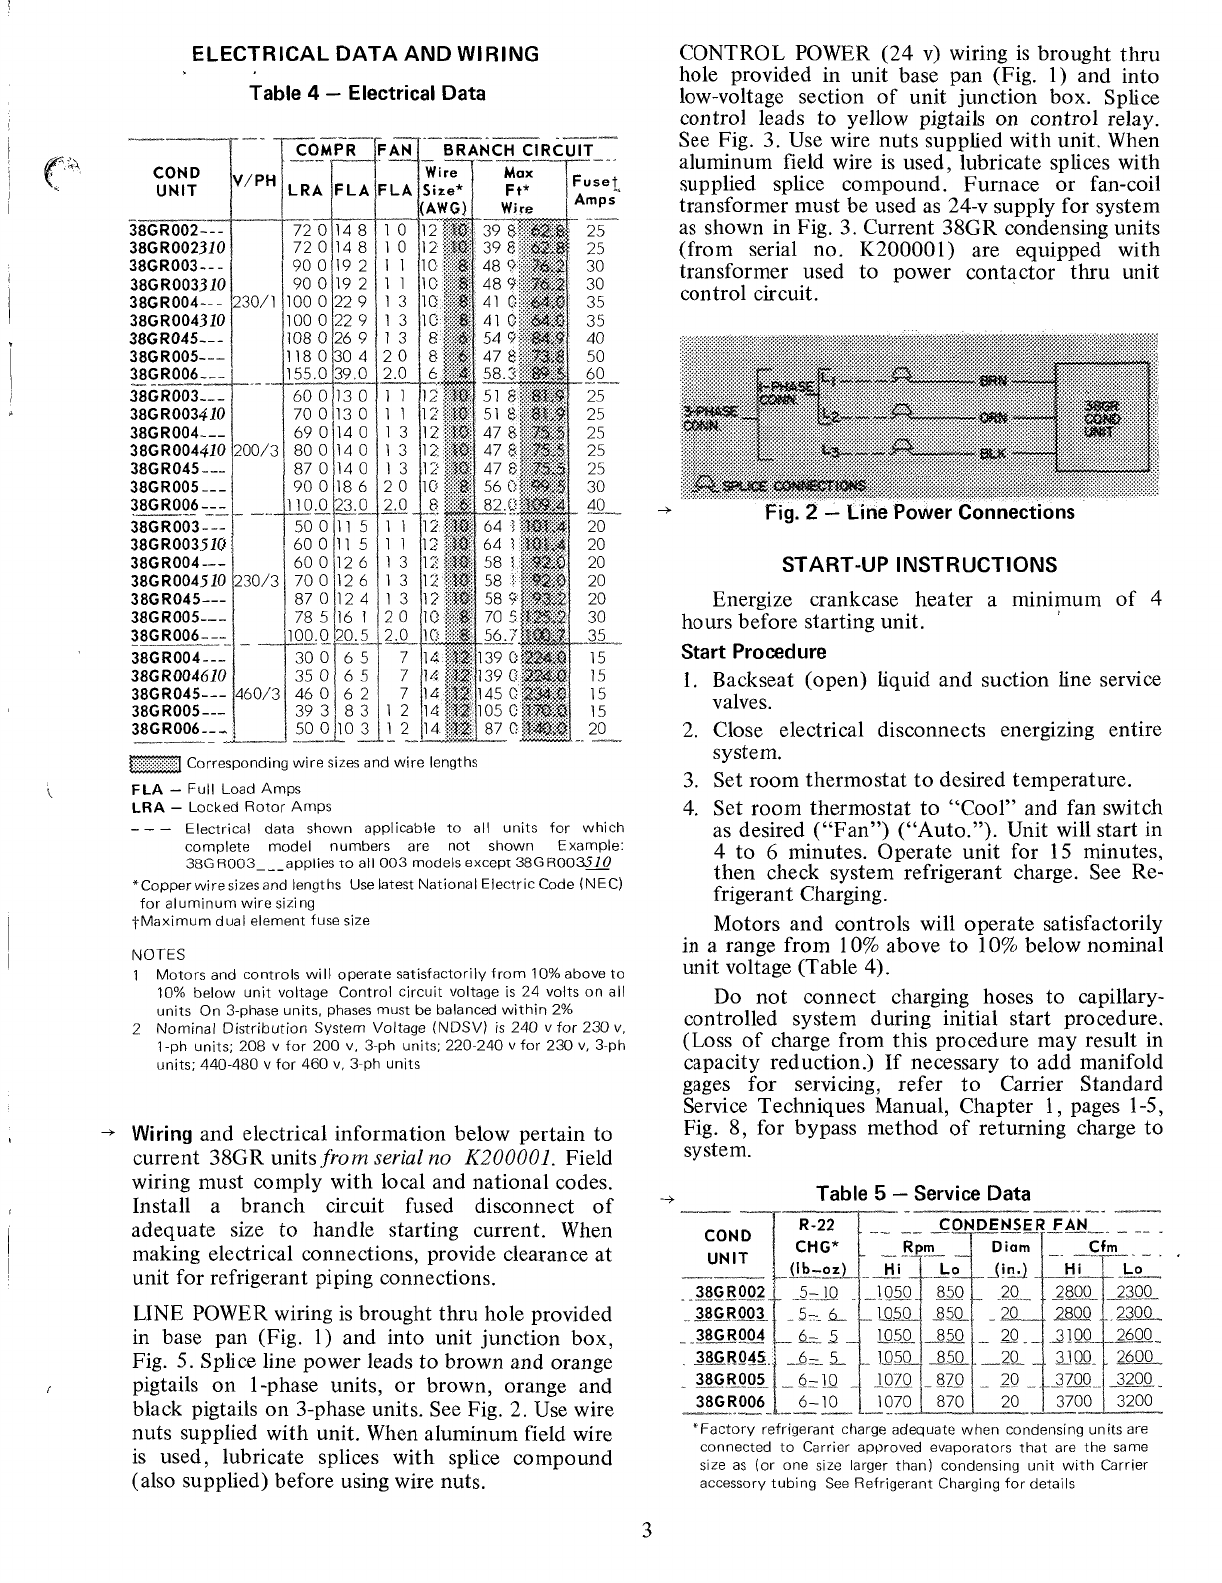 Nice 240 volt wire size gift wiring schematics and diagrams 3 phase on carrier air 07 subaru wrx wiring diagram keyboard keysfo Images